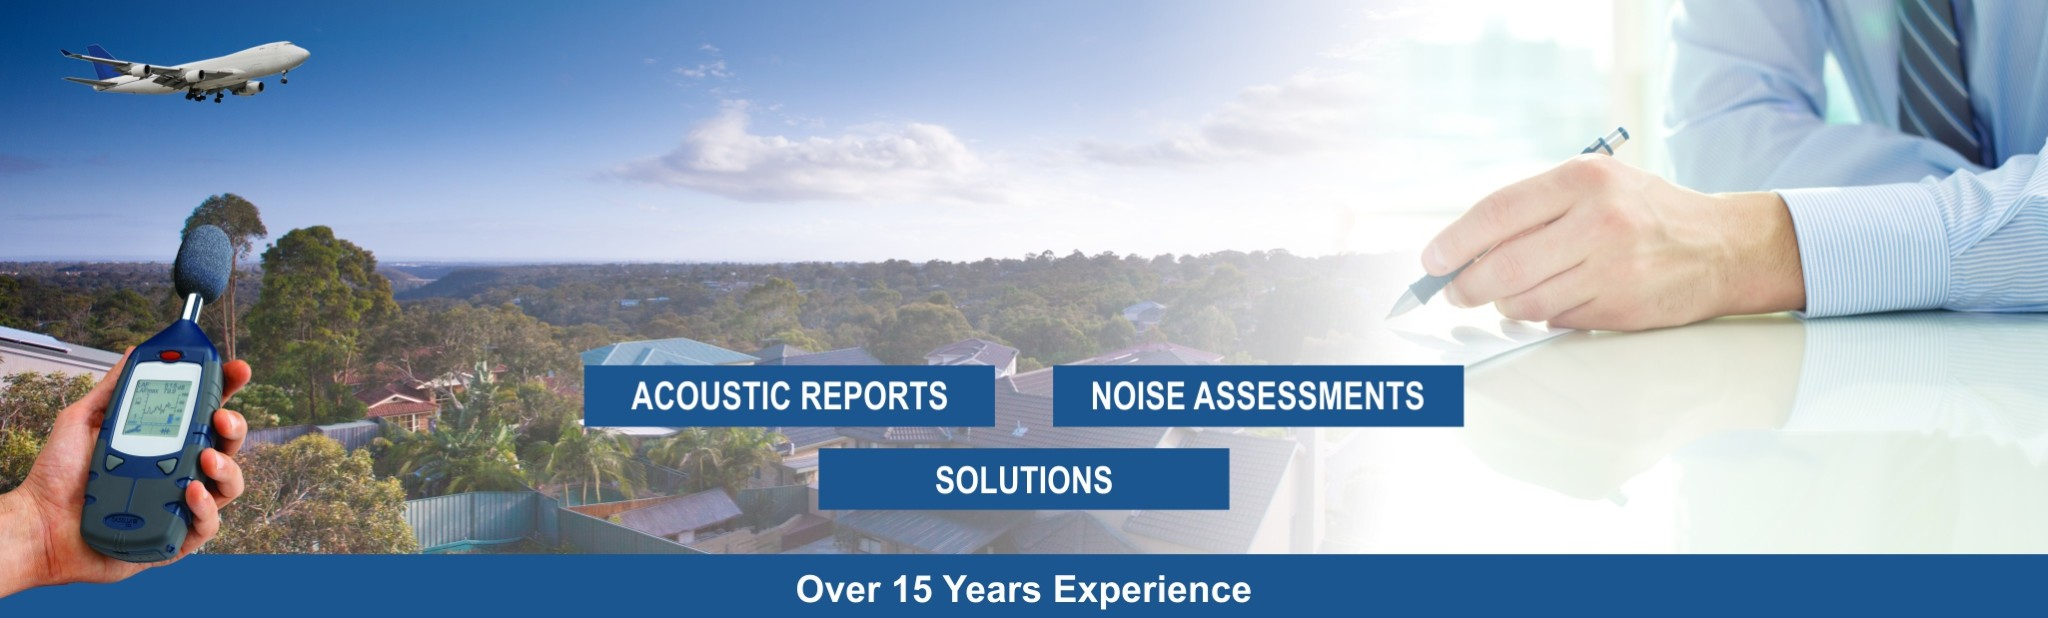 Acoustic Reports & Noise Assessments